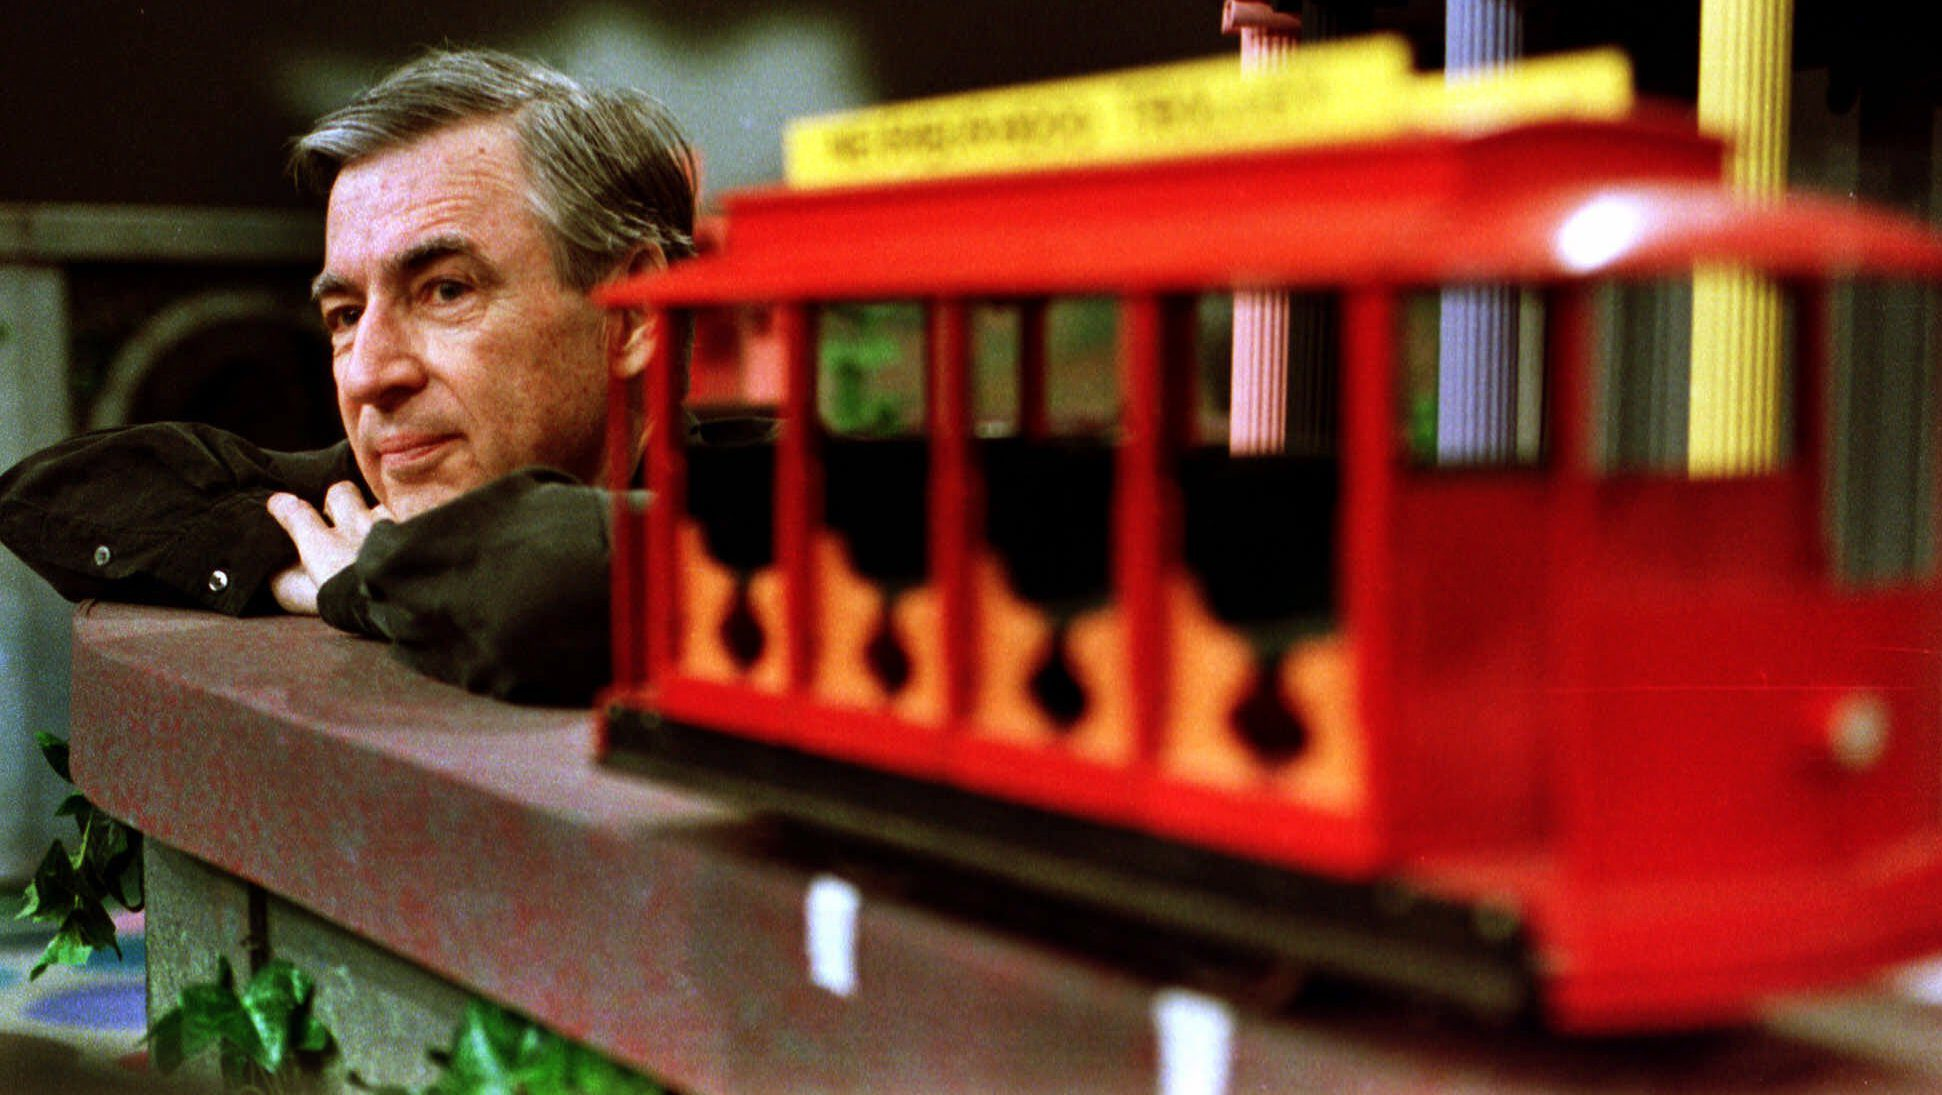 Lost Episodes Of Mr Rogers About The Cold War Have Emerged On Youtube Quartz